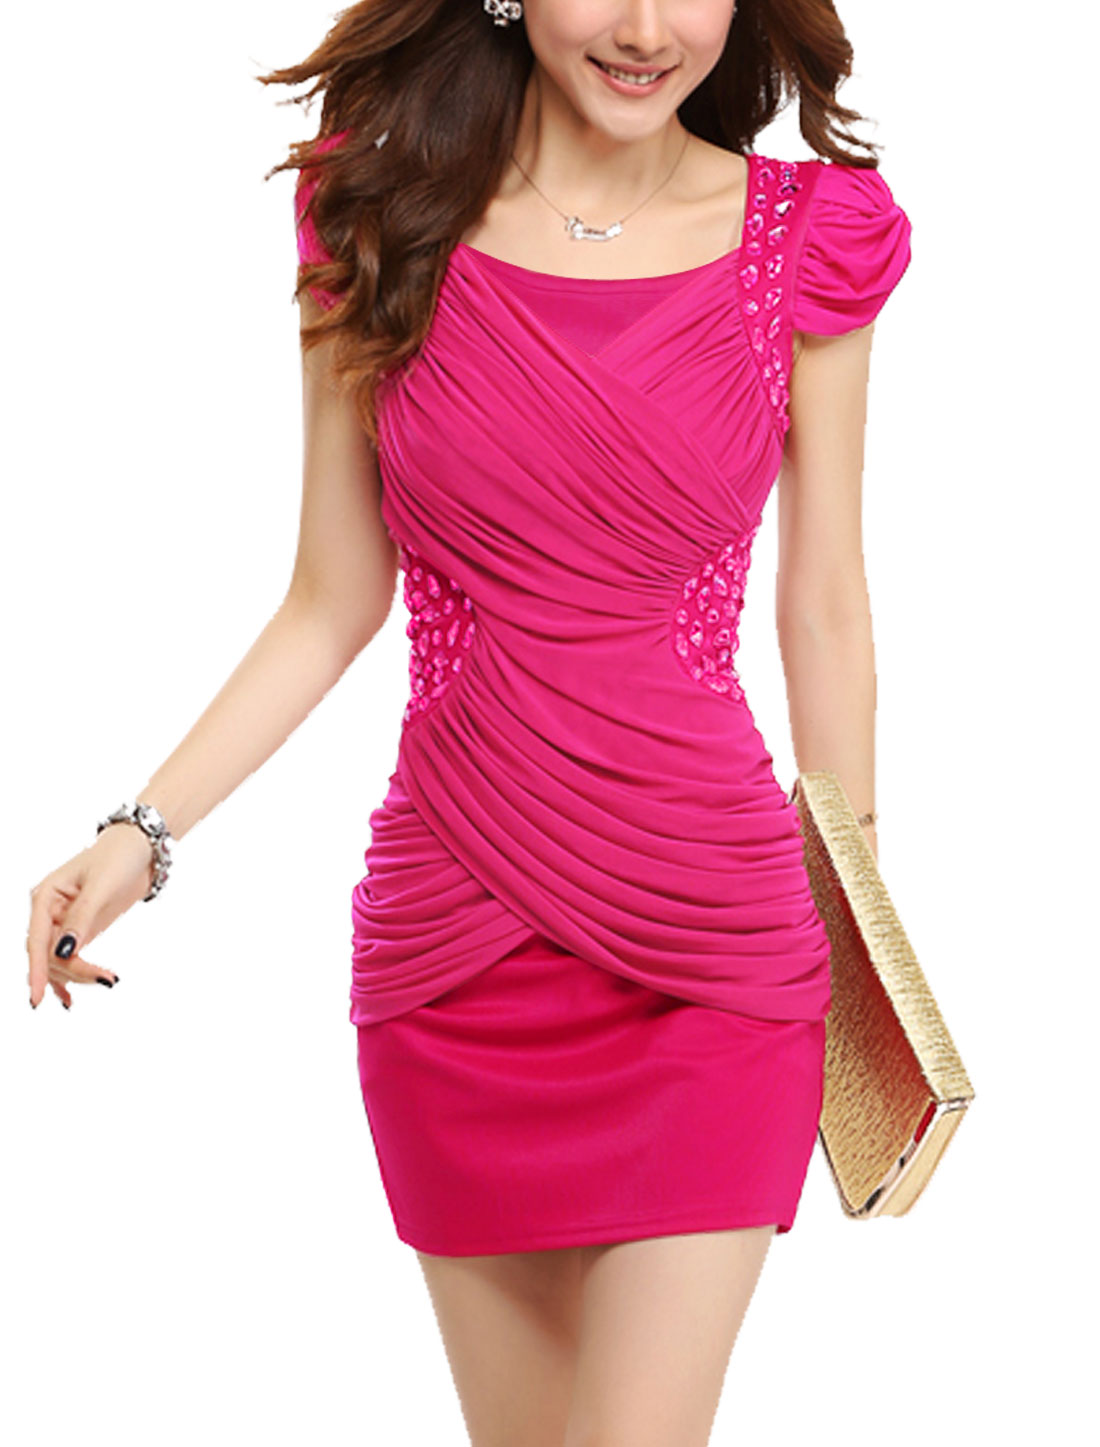 Lady's Mesh Panel Short Cap Sleeve Above Knee Bodycon Dress Fuchsia M